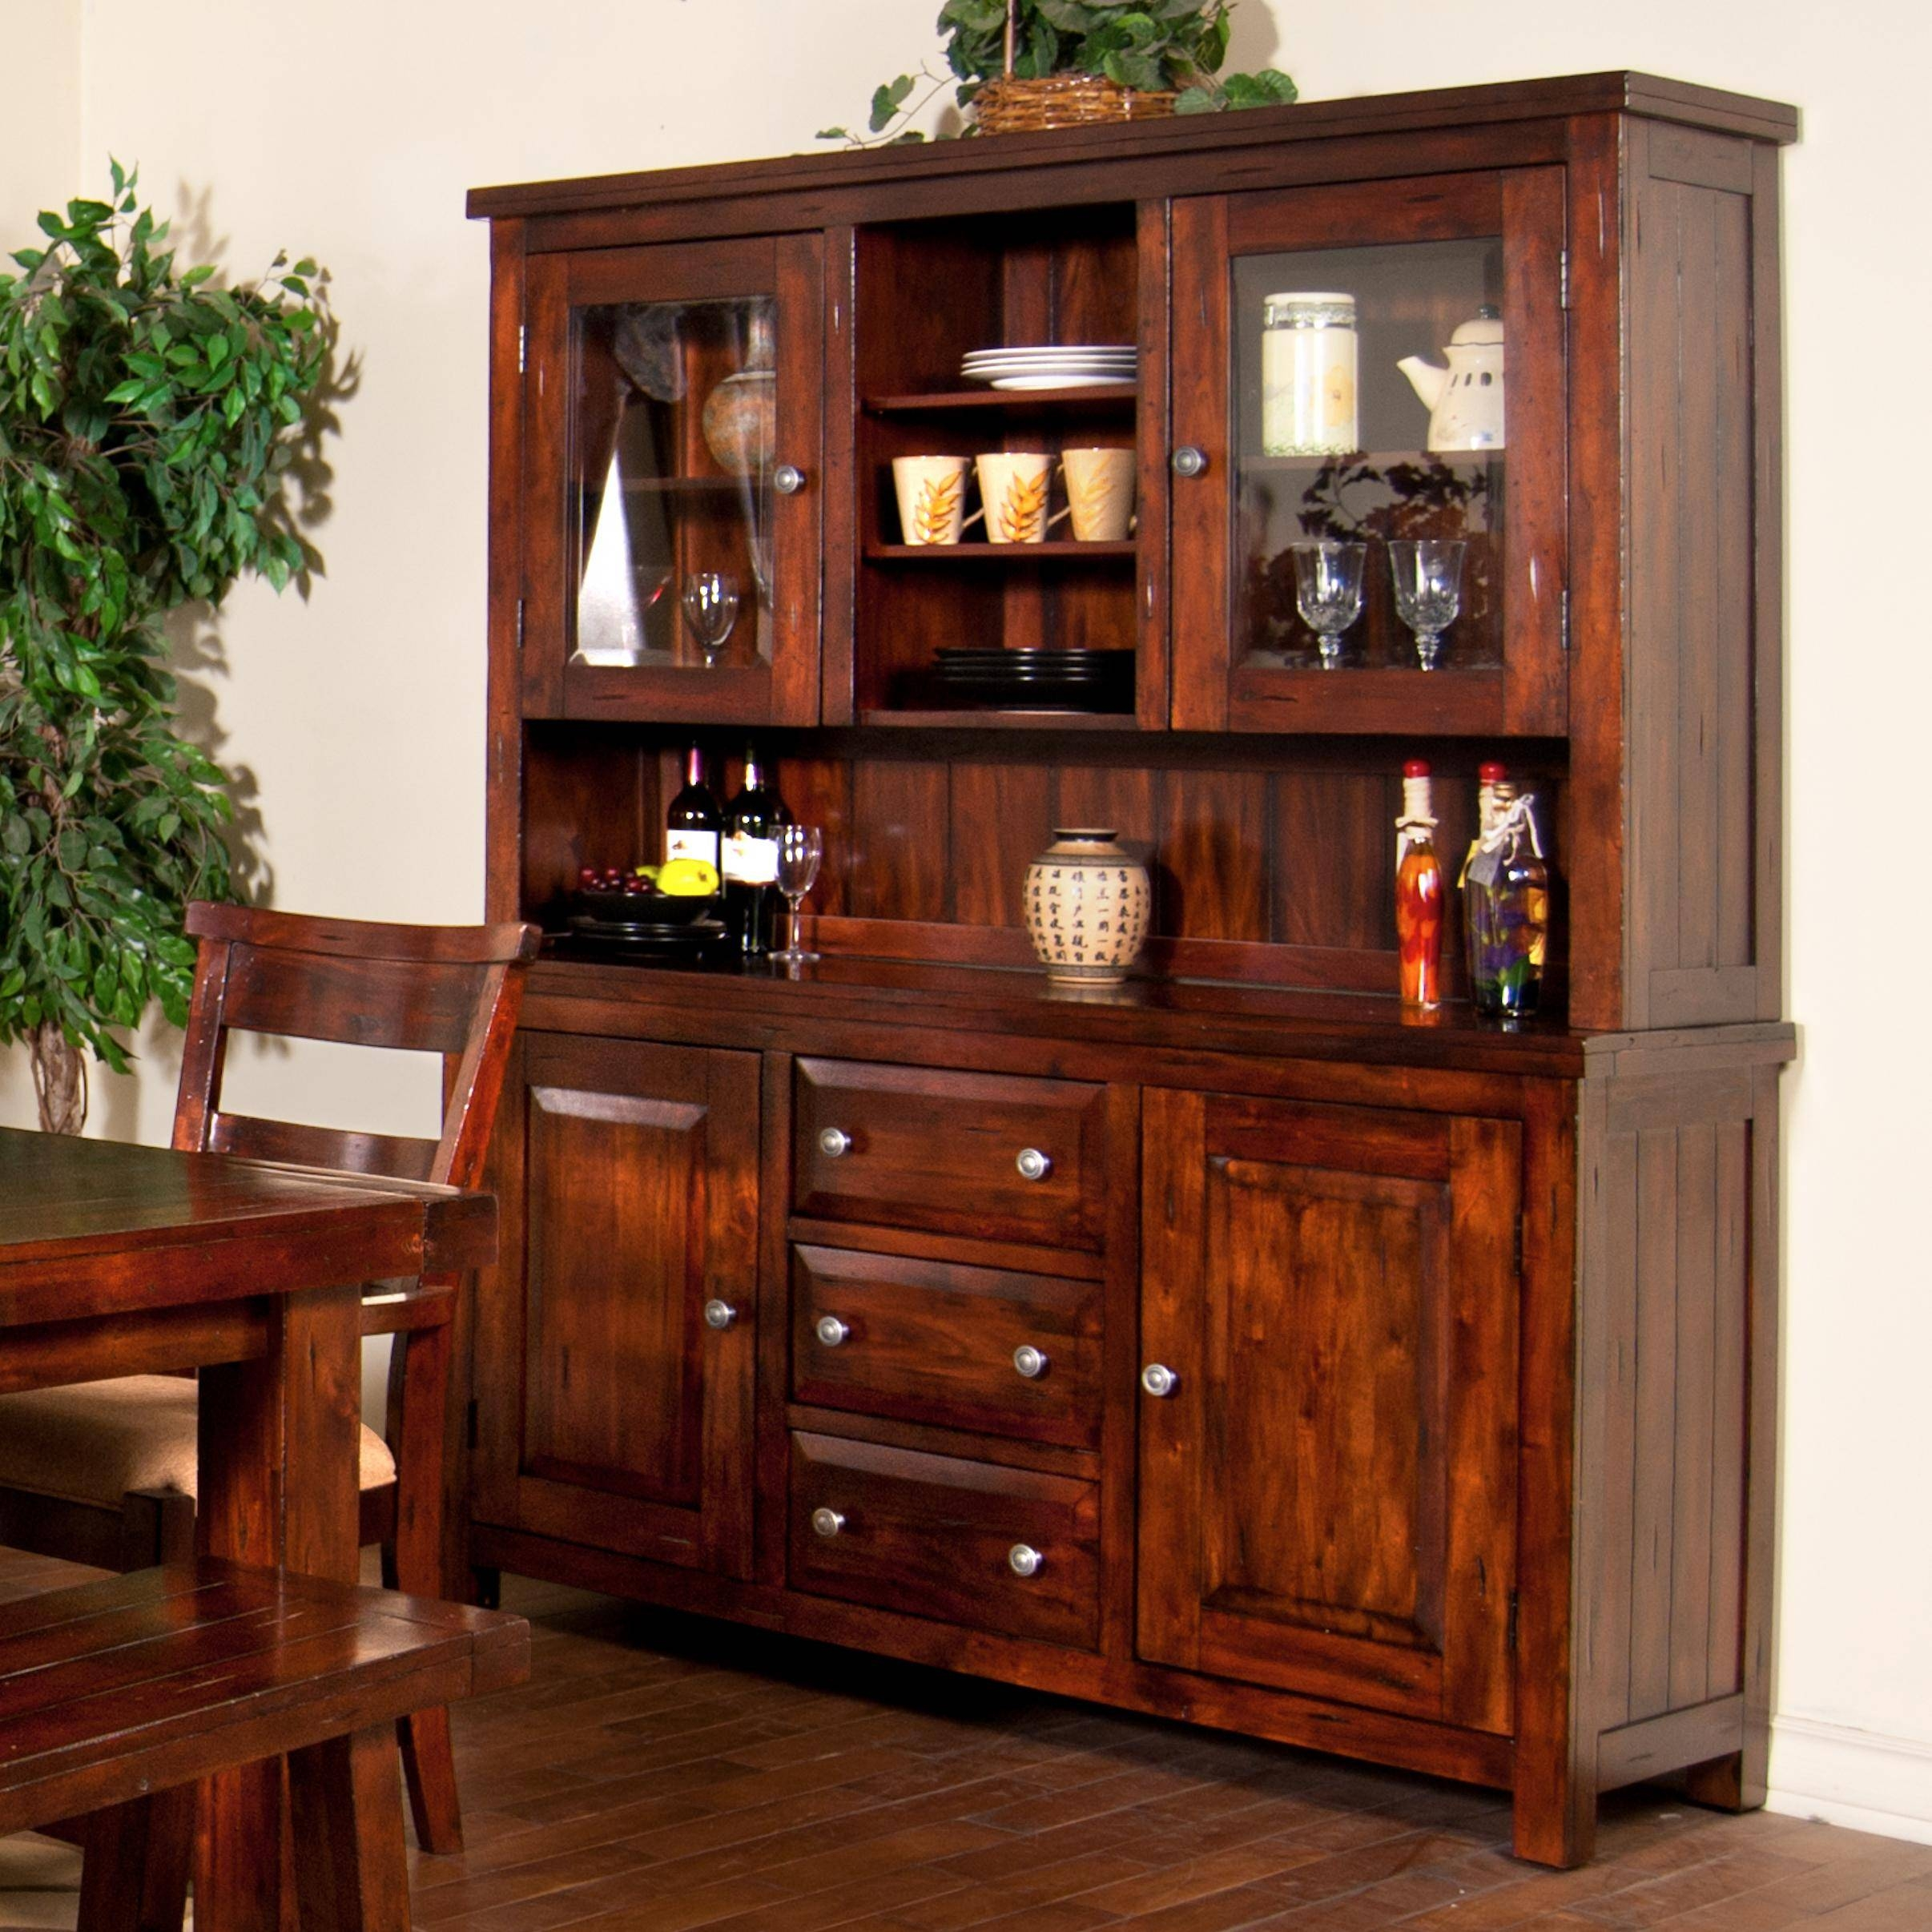 Kitchen : Large Sideboard Narrow Buffet Table Kitchen Hutch Pertaining To Large Sideboard Buffets (View 5 of 15)